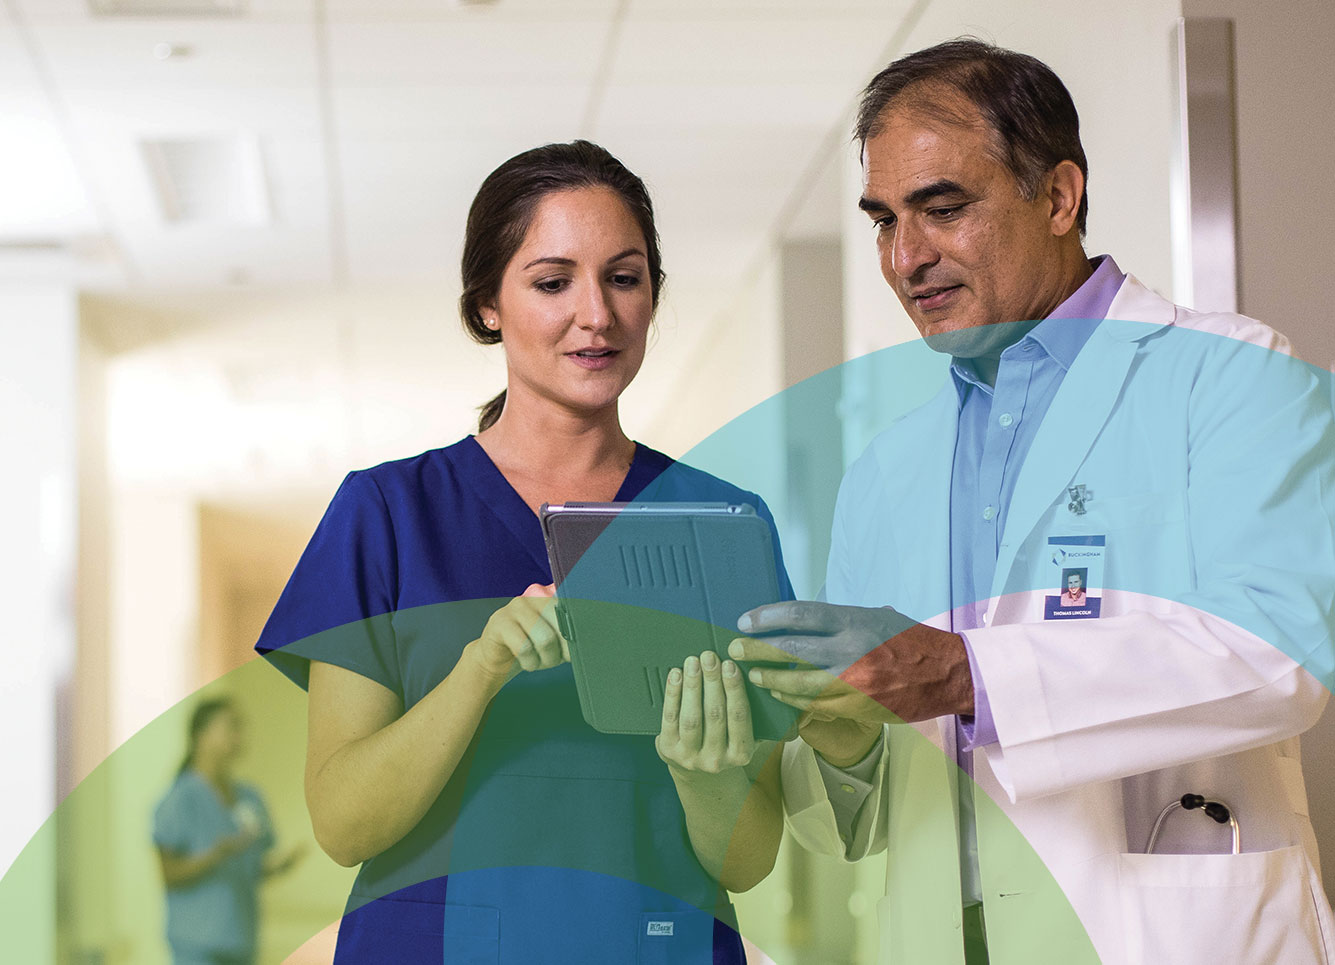 Physician and nurse in clinical setting on tablet, data